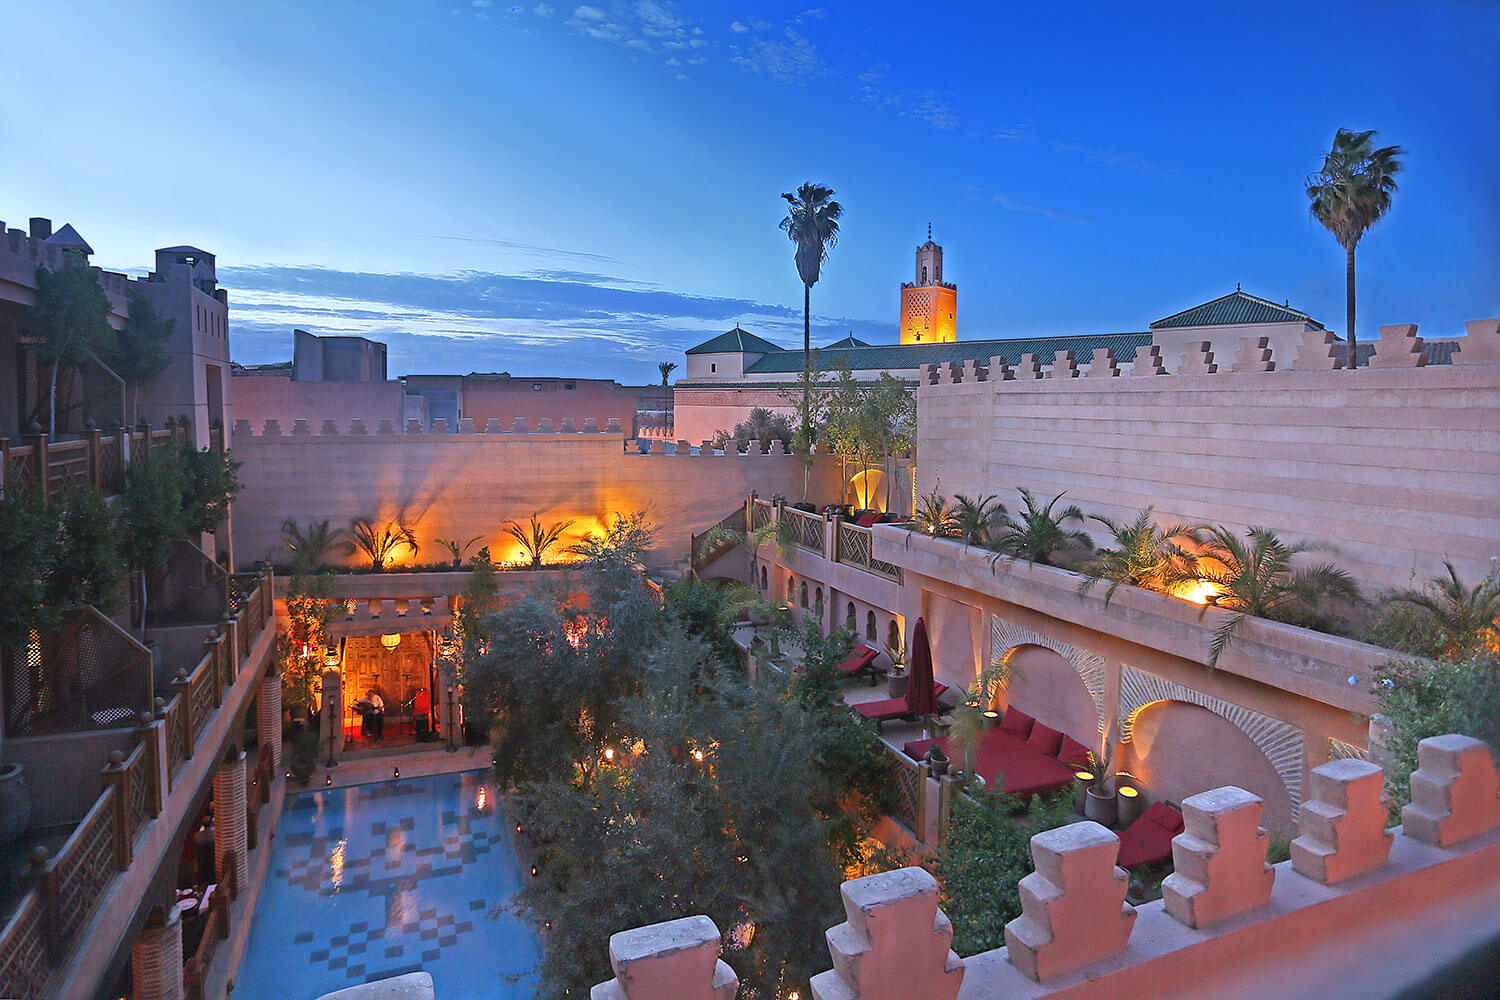 La maison arabe mint morocco for Architecture maison arabe